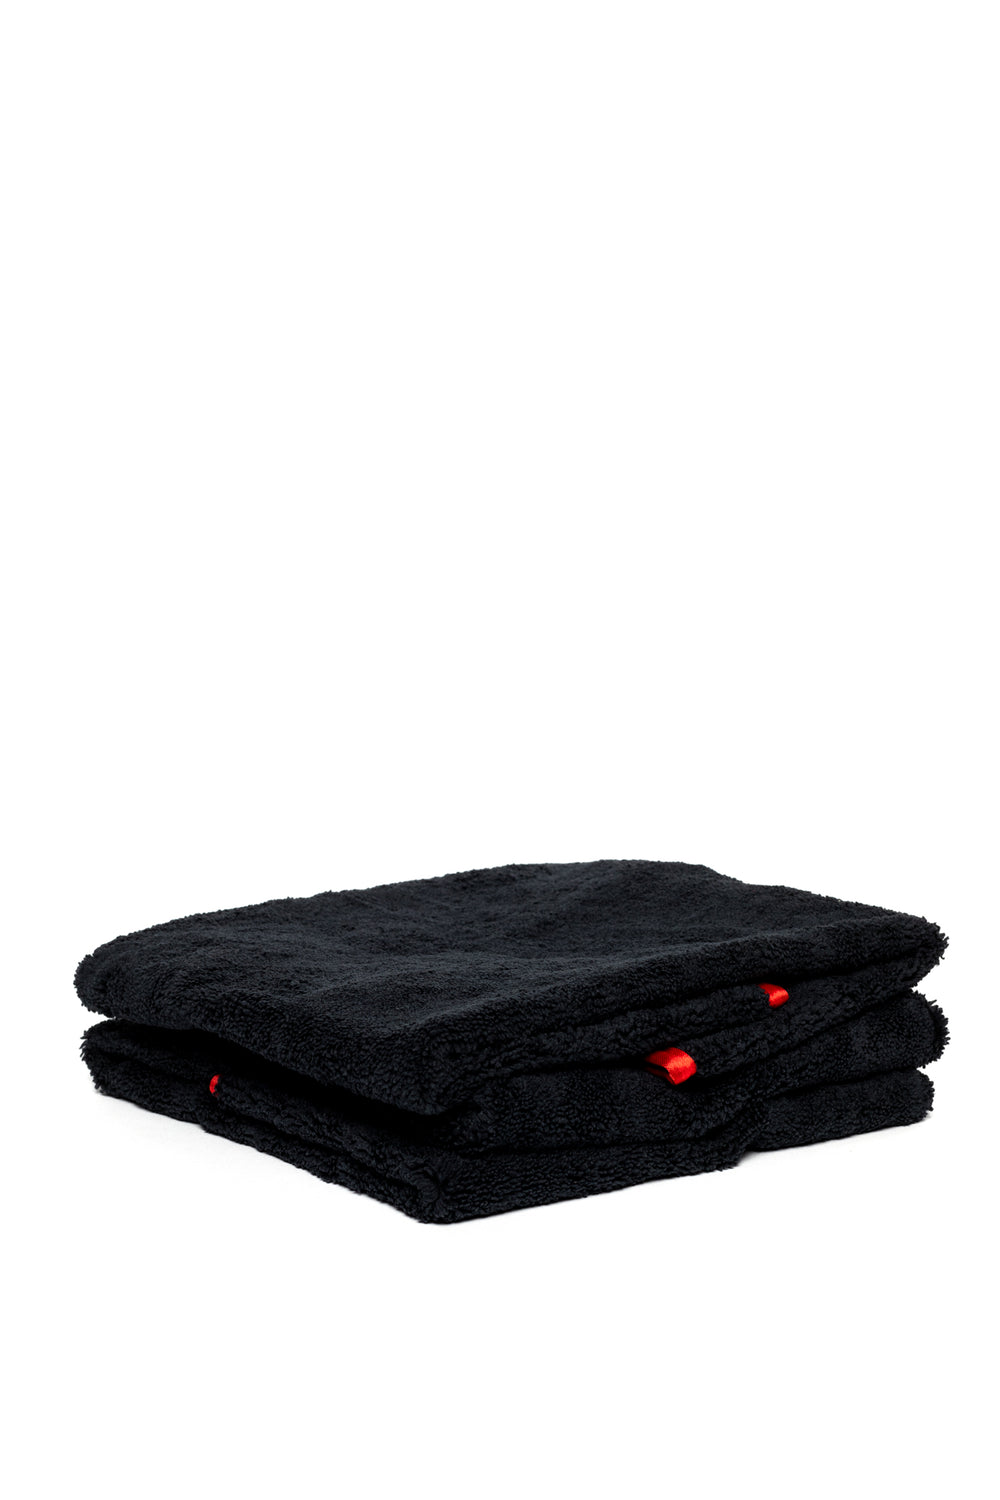 _SVIPE Car Care - Microfiber Towels